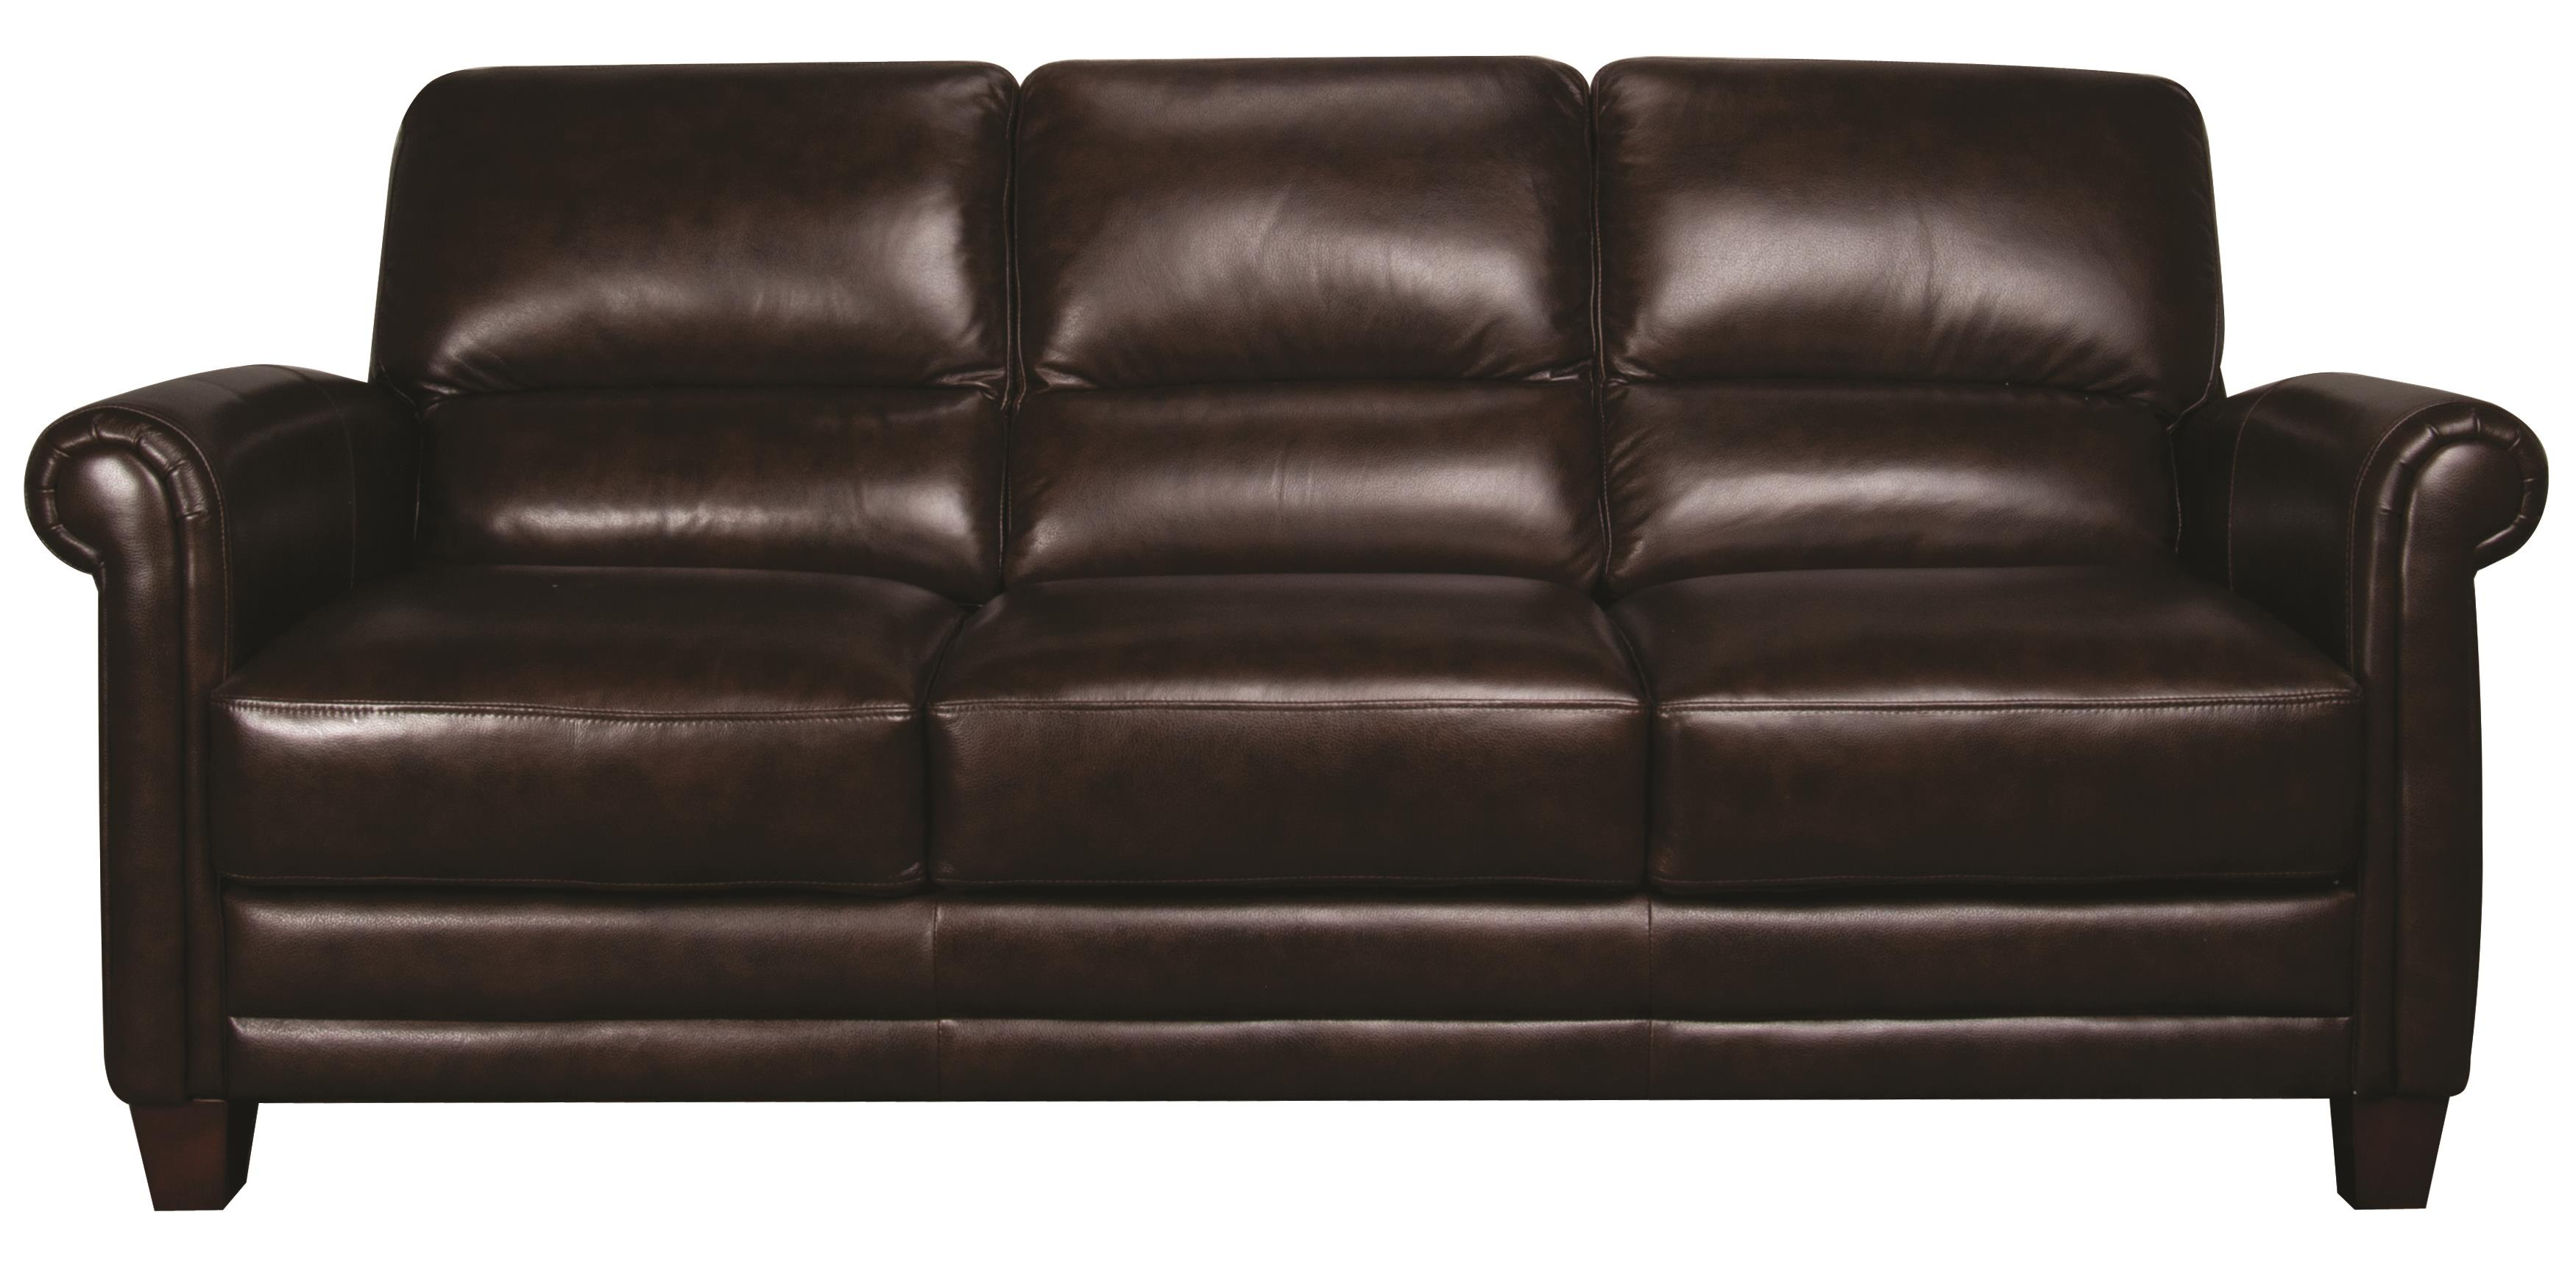 Morris Home Furnishings Victor Victor 100% Leather Sofa - Item Number: 103807080